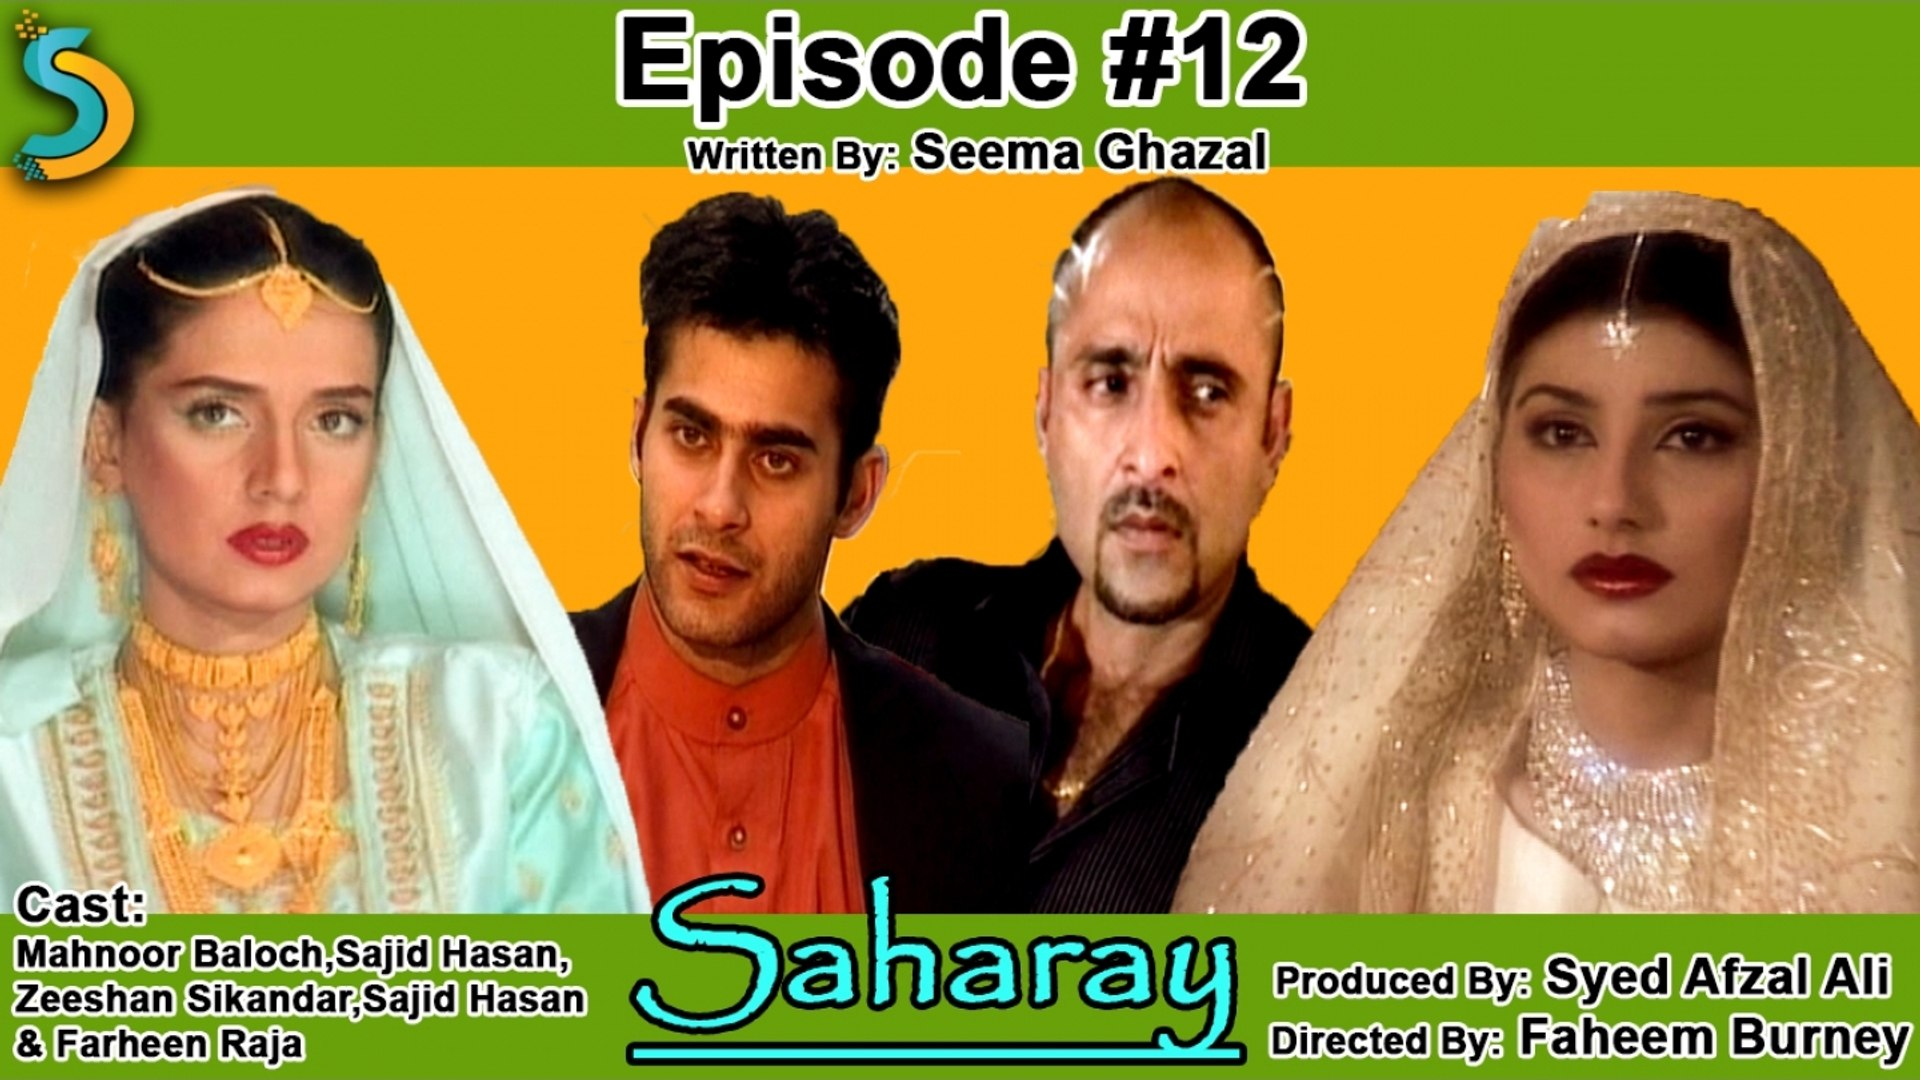 Syed Afzal Ali Ft. Sajid Hasan - Saharay Drama Serial | Episode #12